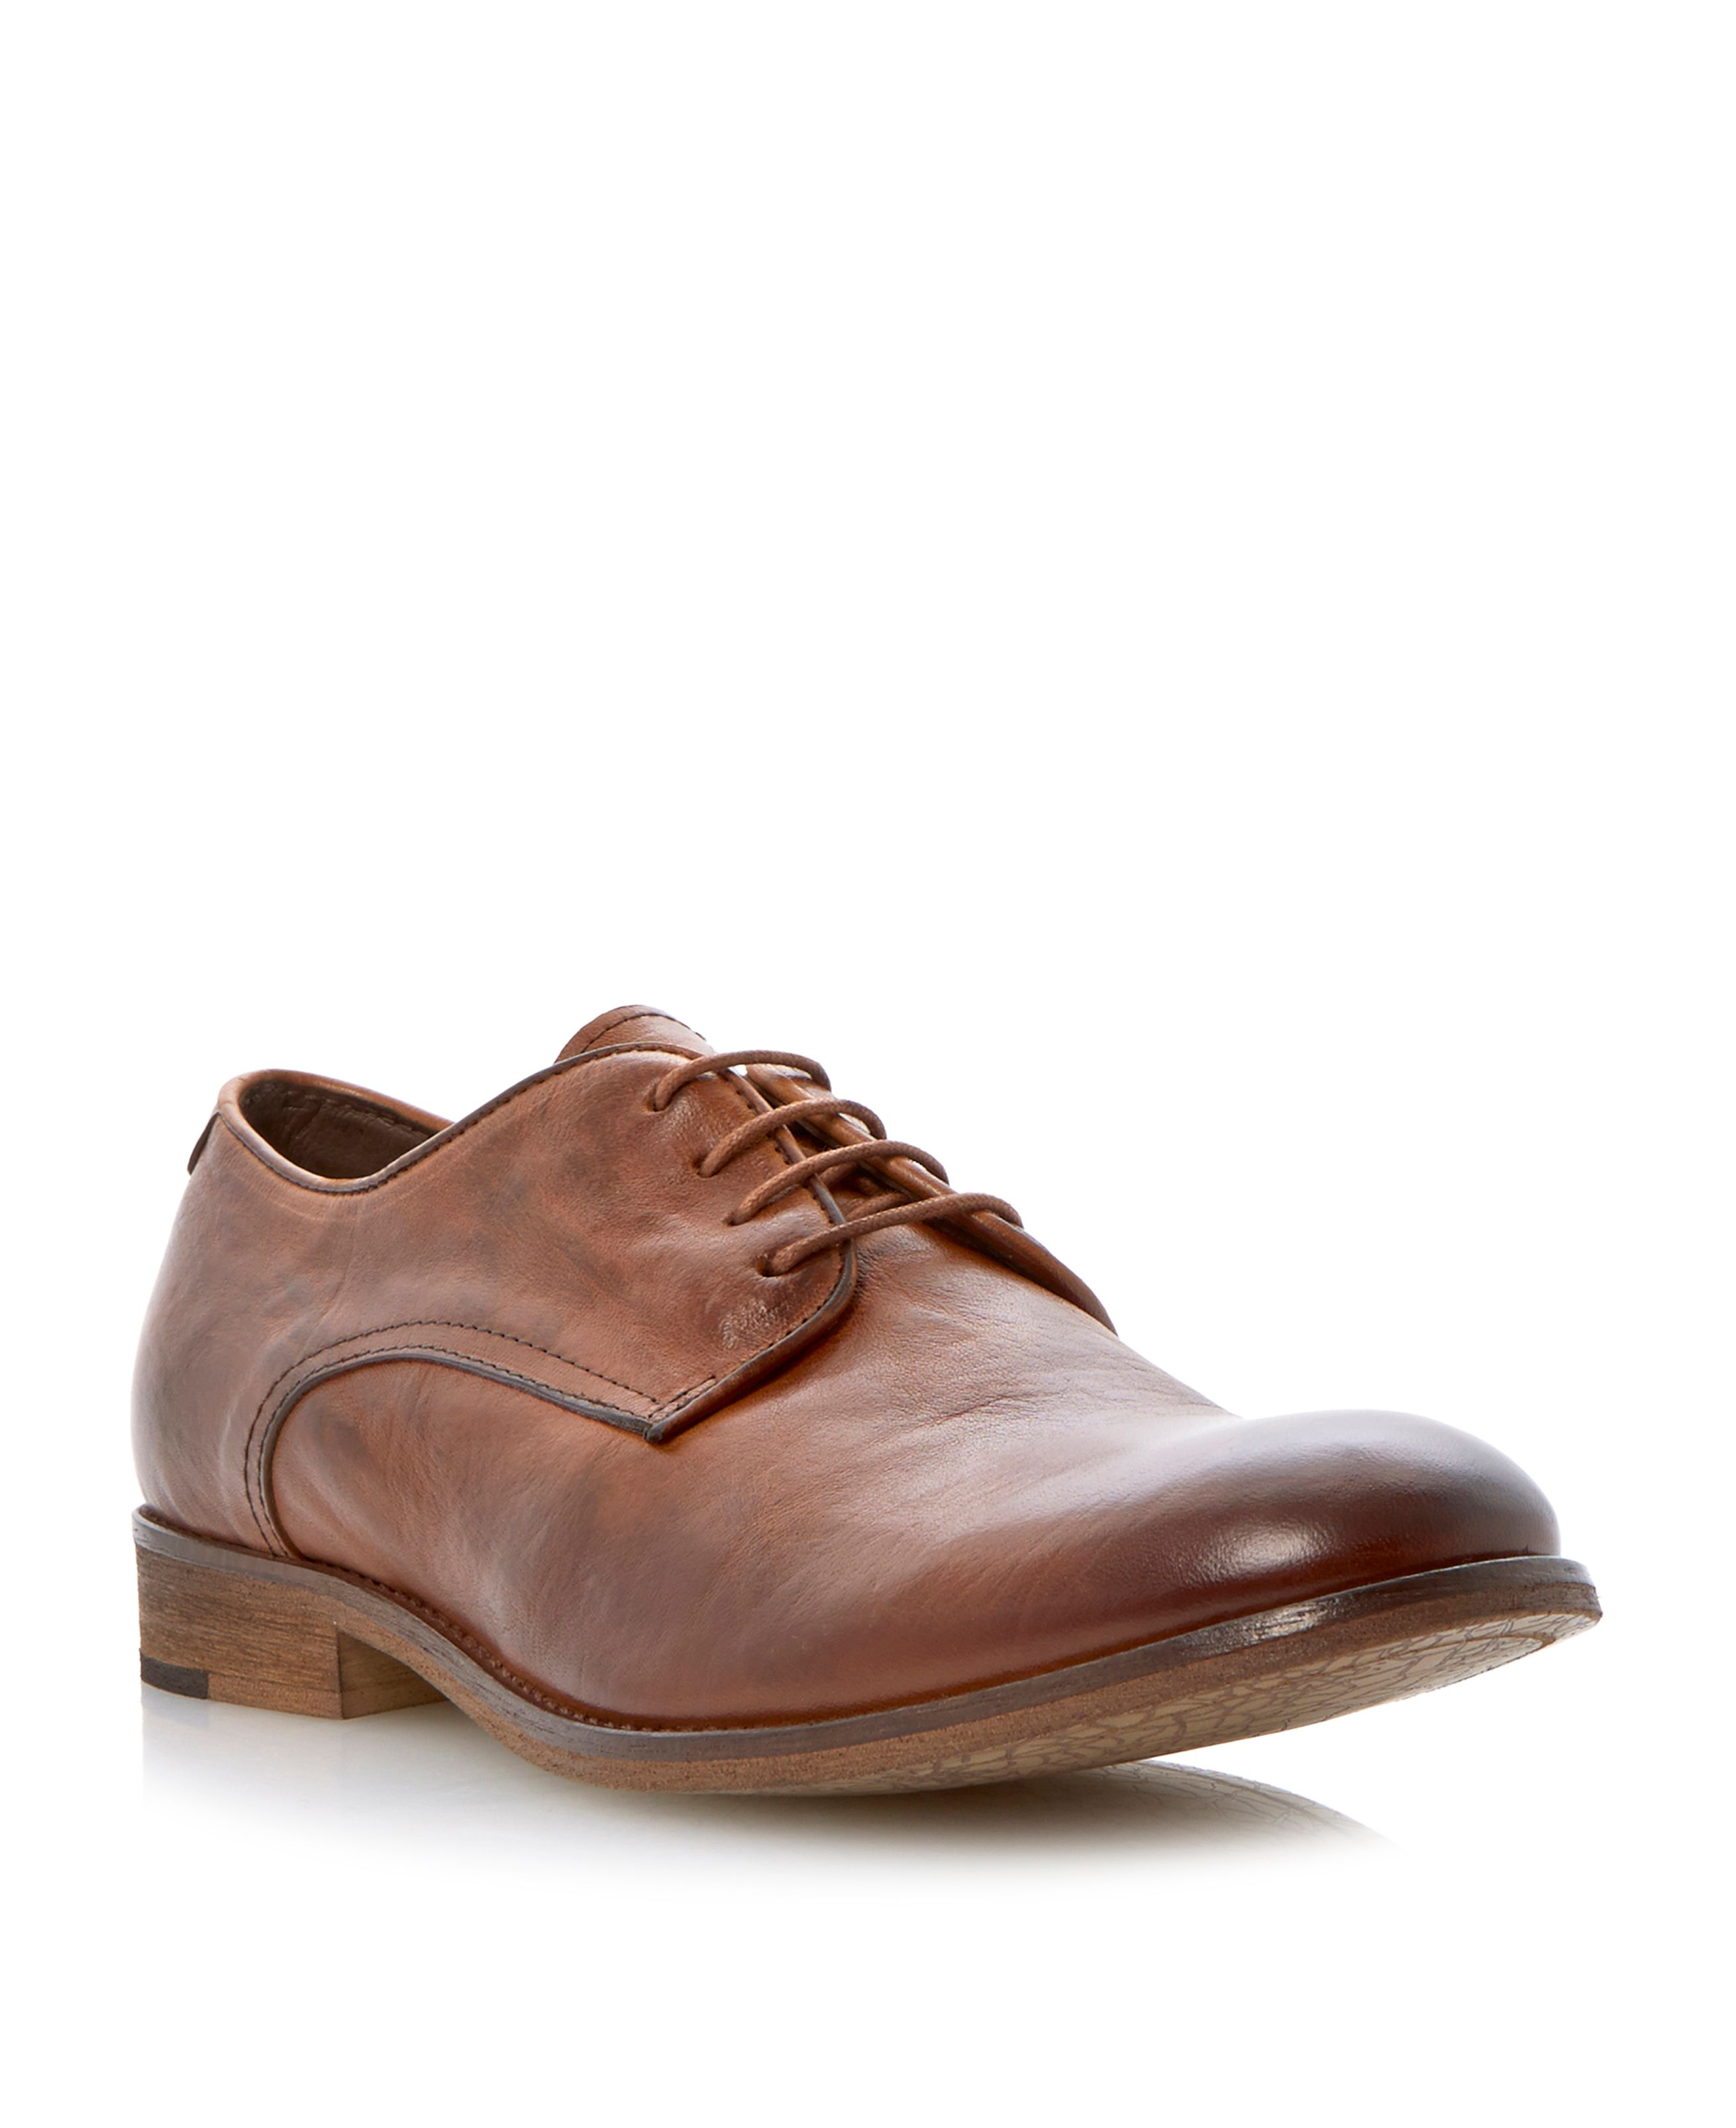 Bouncer gibson lace up shoes